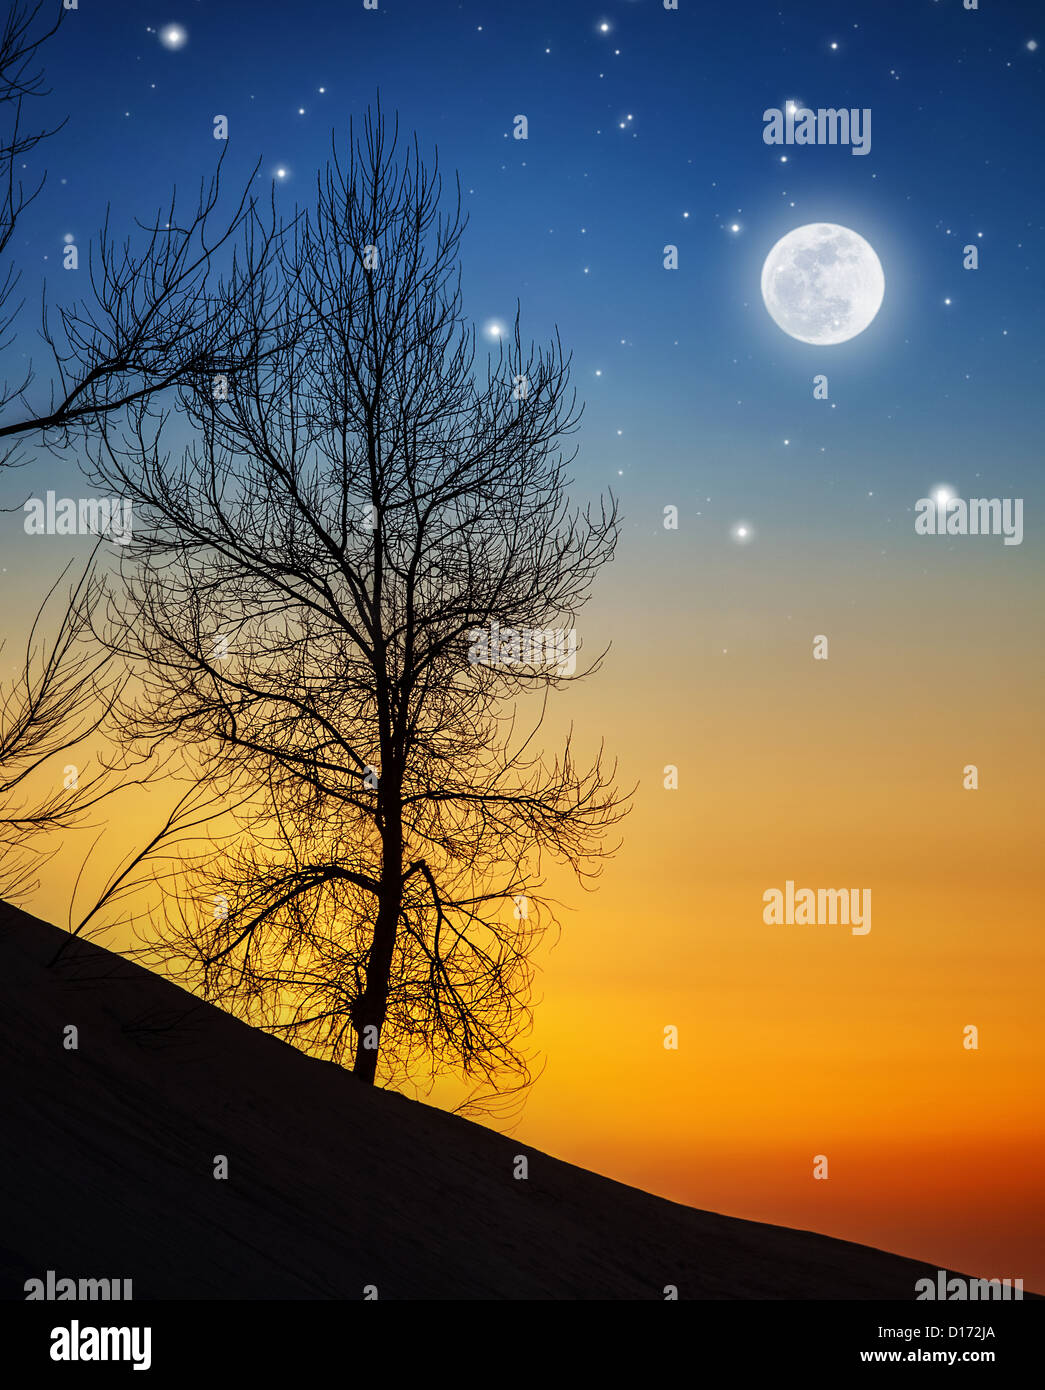 Picture of big dry tree in moonlight, silhouette of wood on hill on dark night background, bright moon with shining - Stock Image